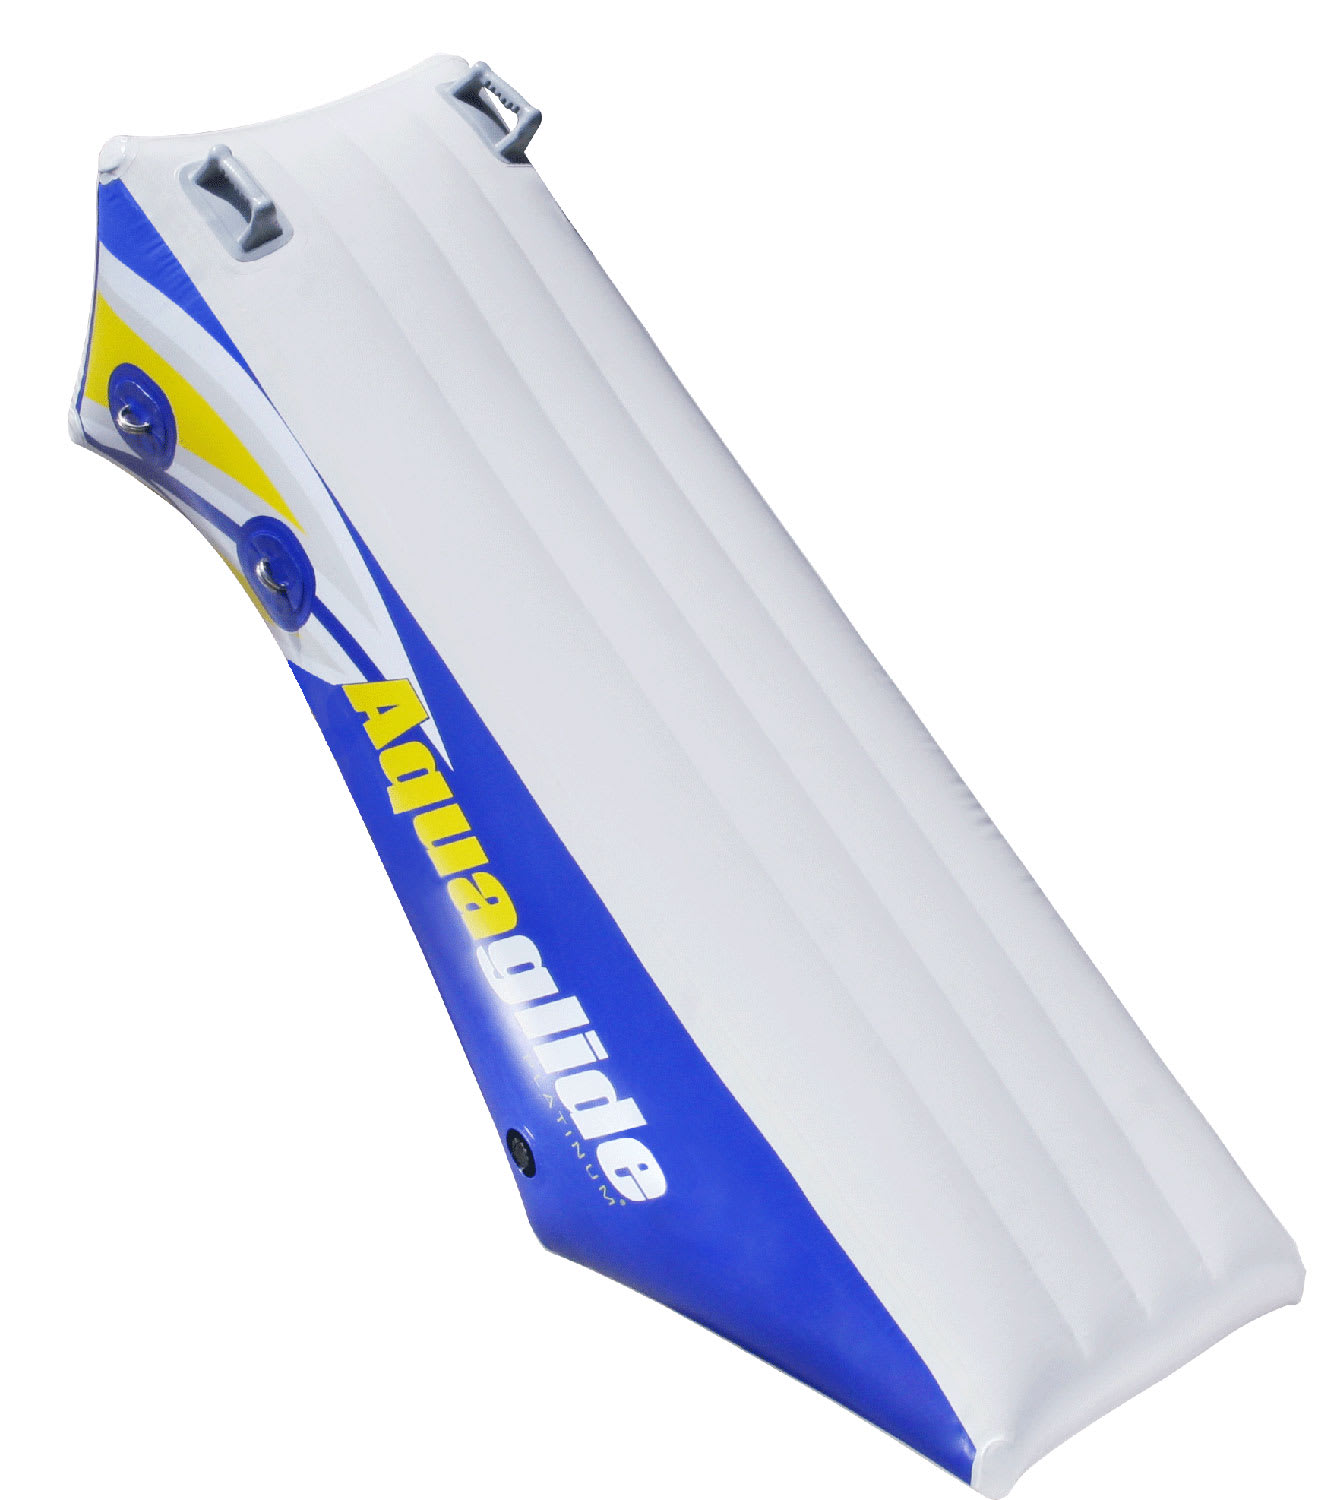 Click here for Aquaglide Bouncer Slide 16' prices